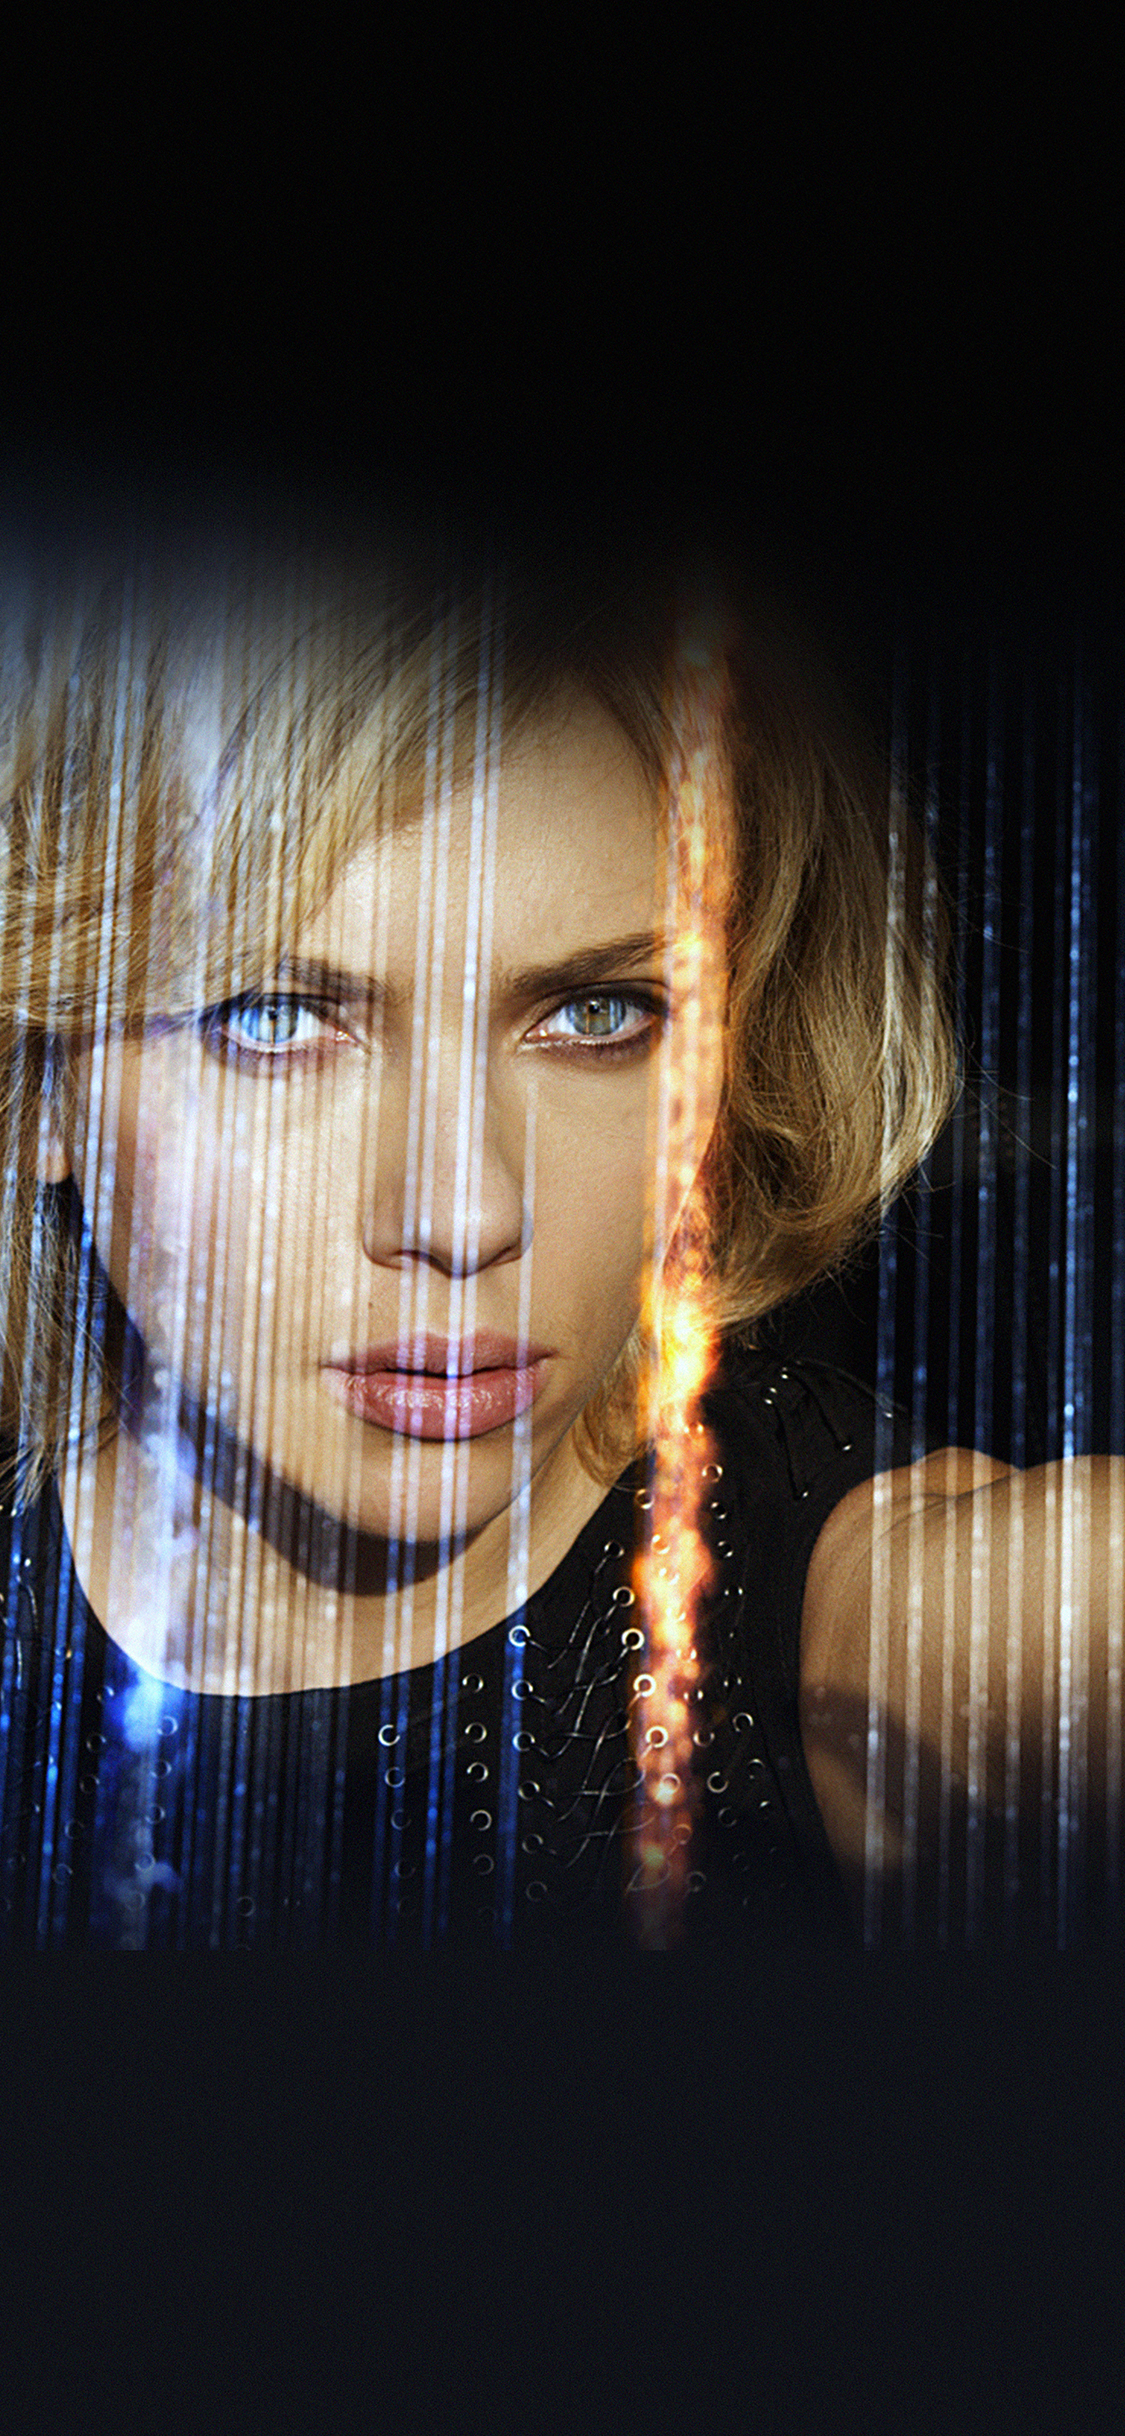 iPhoneXpapers.com-Apple-iPhone-wallpaper-hb04-wallpaper-lucy-film-scarlett-johansson-sexy-face